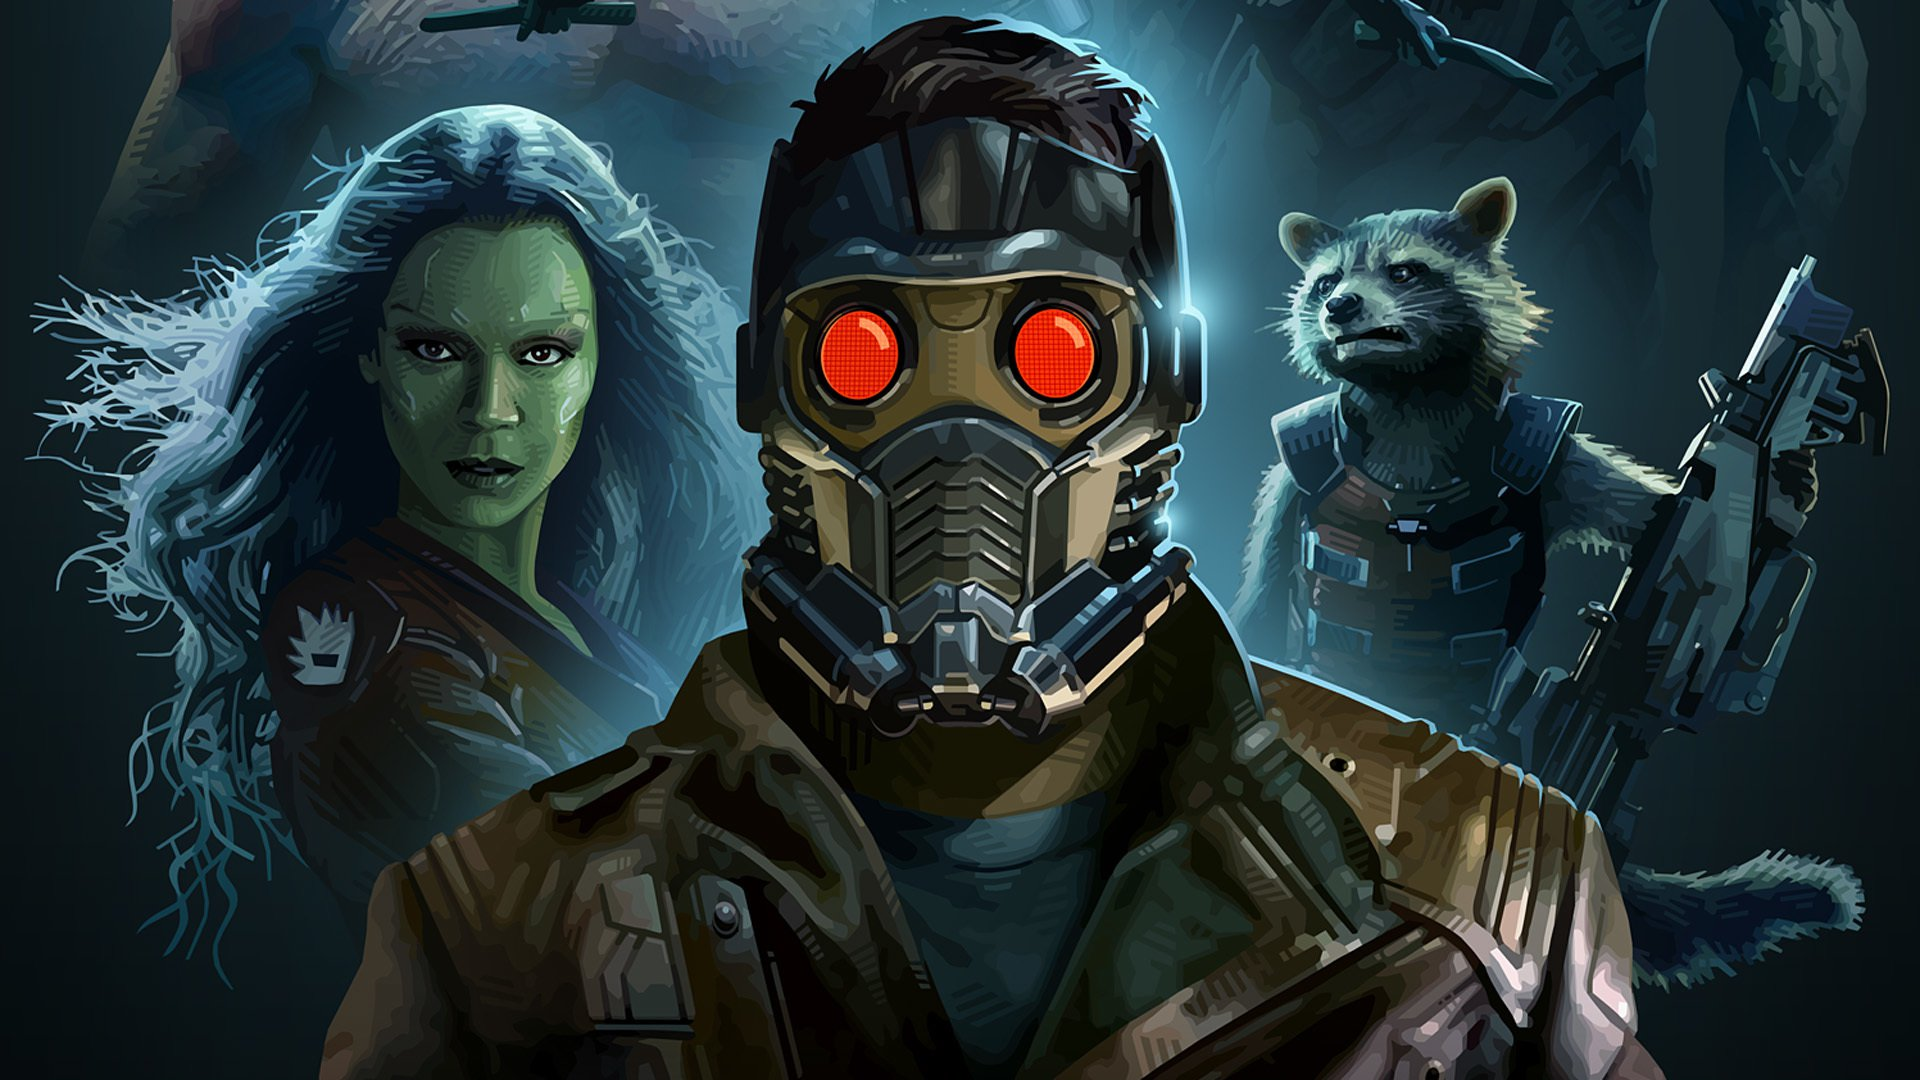 Guardians Of The Galaxy Wallpapers, Pictures, Images